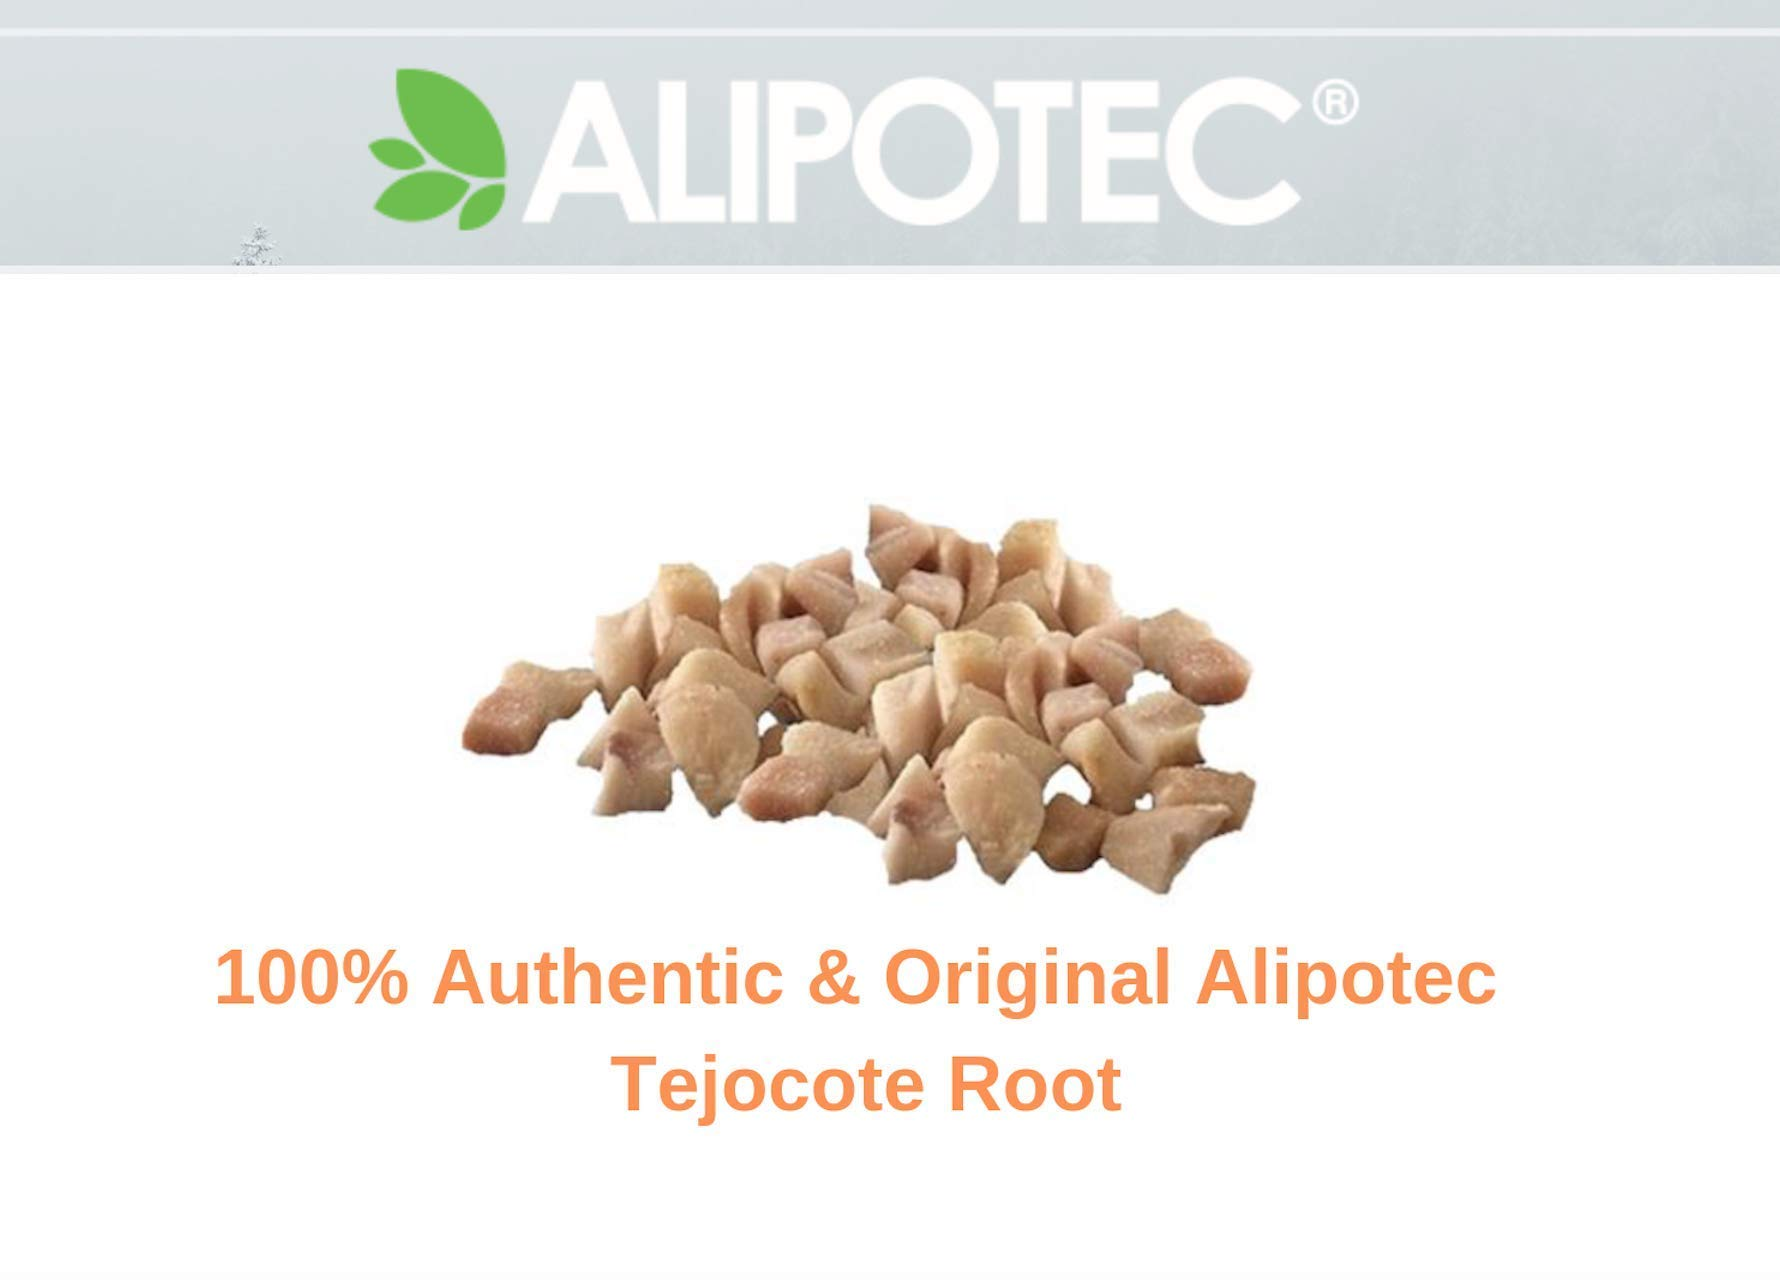 *Brand New Design* Original Elv Alipotec Tejocote Root Treatment - 1 Bottle (3 Month Treatment) - Most Popular, All-Natural Weight Loss Supplement in Mexico by Alipotec (Image #3)